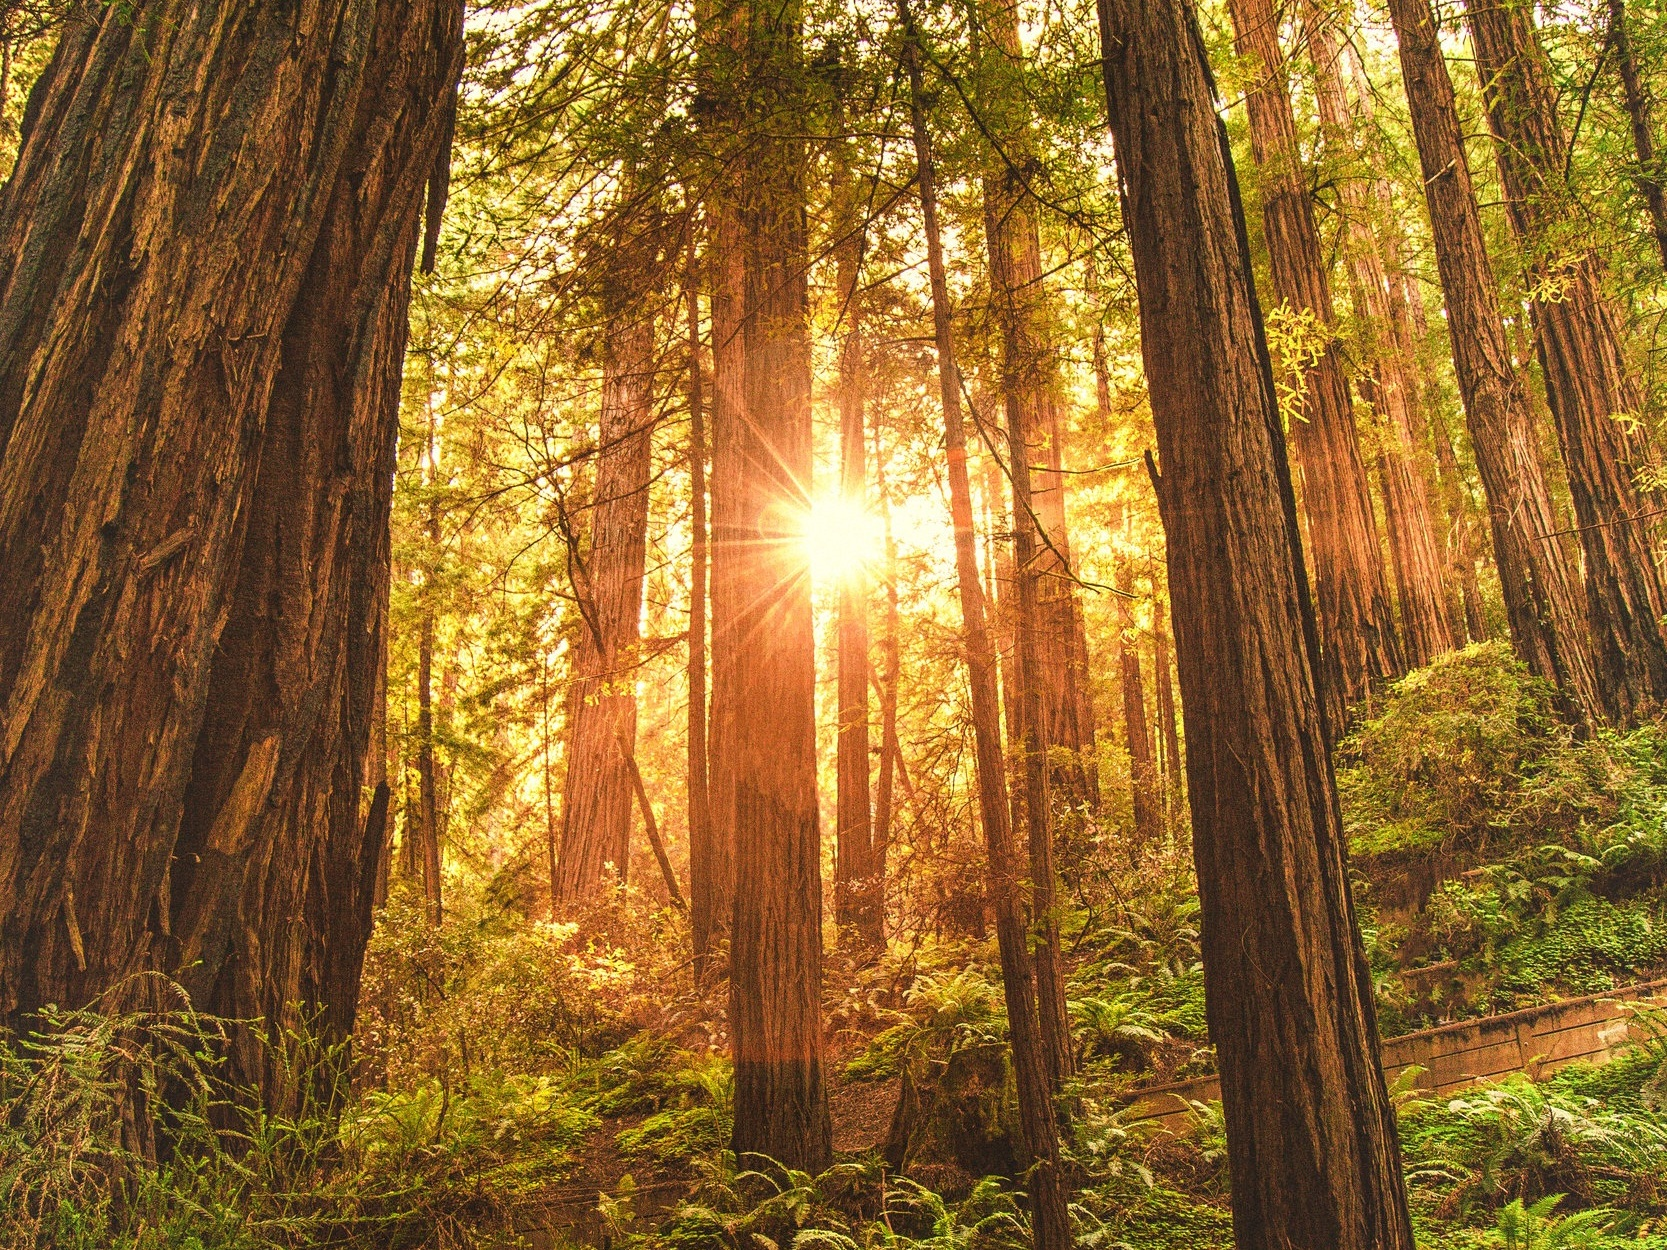 HENRY COWELL REDWOODS STATE PARK - Amazing camping right in Santa Cruz. This state park is only 6 miles from our location. Renters will often stay here the first or the last night of their trip. You can book a site here up to 6 months in advance.